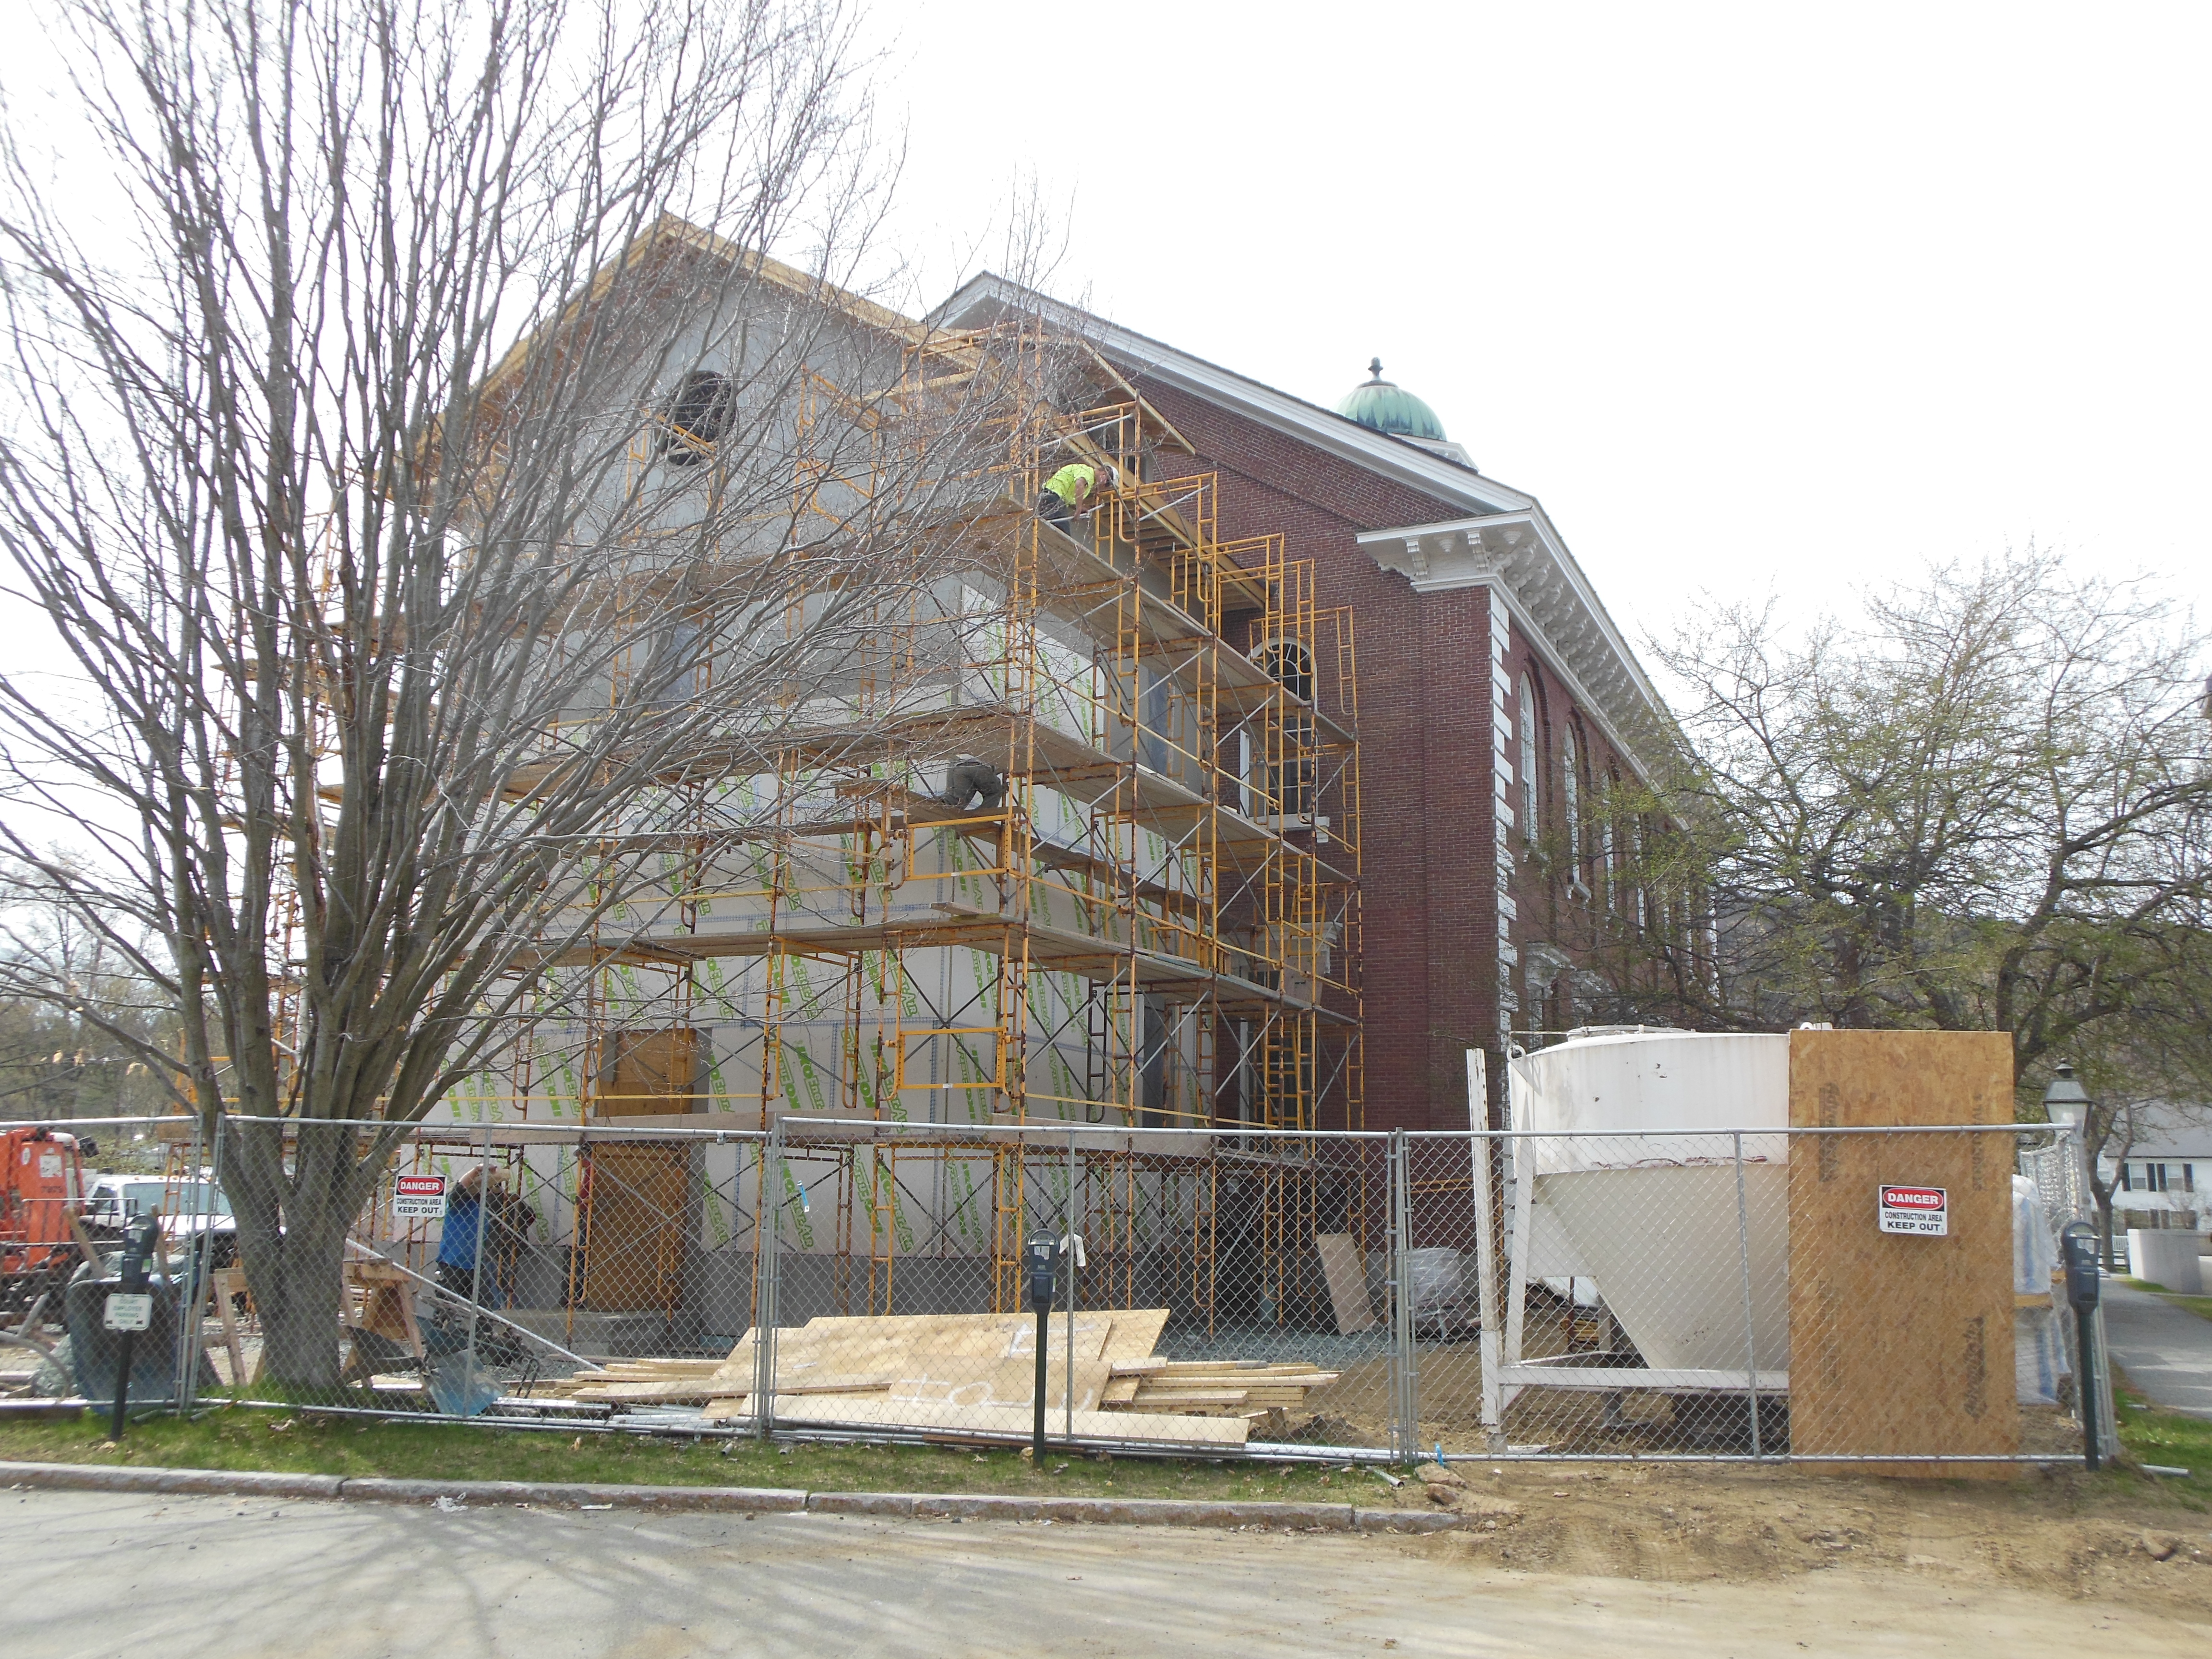 NEARING COMPLETION OF THE REAR ADDITION